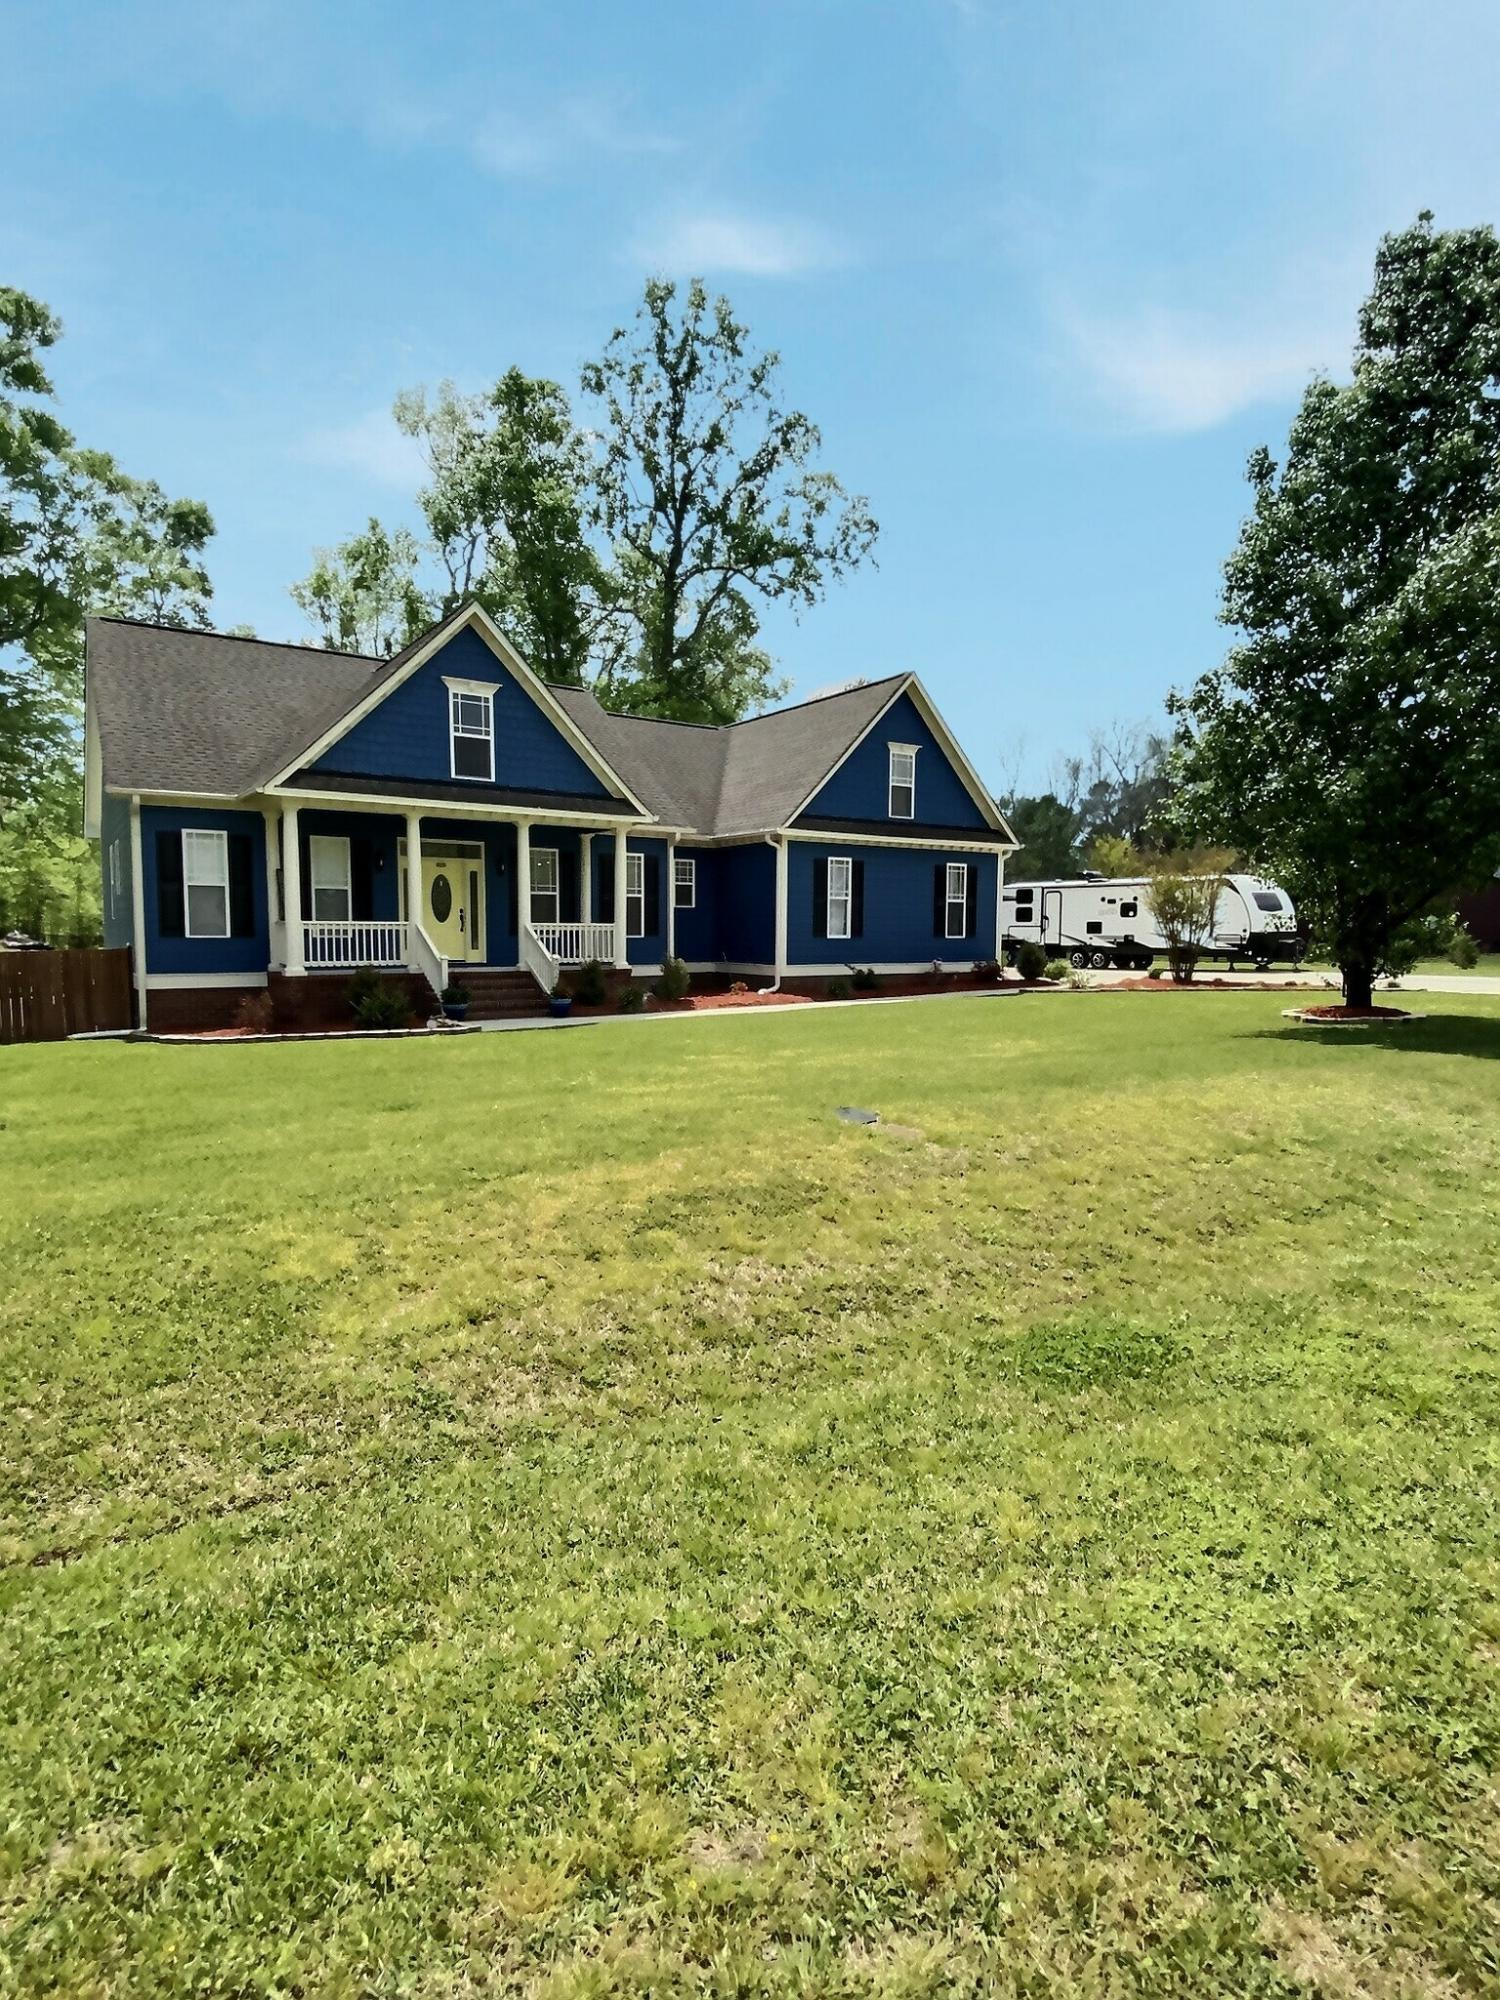 Look no further! This incredible home in Hinson Farms offers so much and no HOA's! Immaculately kept, this 3 bedroom 2 bathroom with large bonus room over the garage sits on 2.86 acres!  The backyard is an oasis with screened porch and new deck, inground pool, firepit, 2 gazebos and workshop with chick coop!  Walk up the to the home with fresh paint, relax on the covered front porch. Step into the home,  a large foyer, formal dining area to the right, living room has vaulted ceilings & cozy fireplace too!  Granite countertops grace the kitchen. Tons of crown molding throughout the home.  This home will not last long!